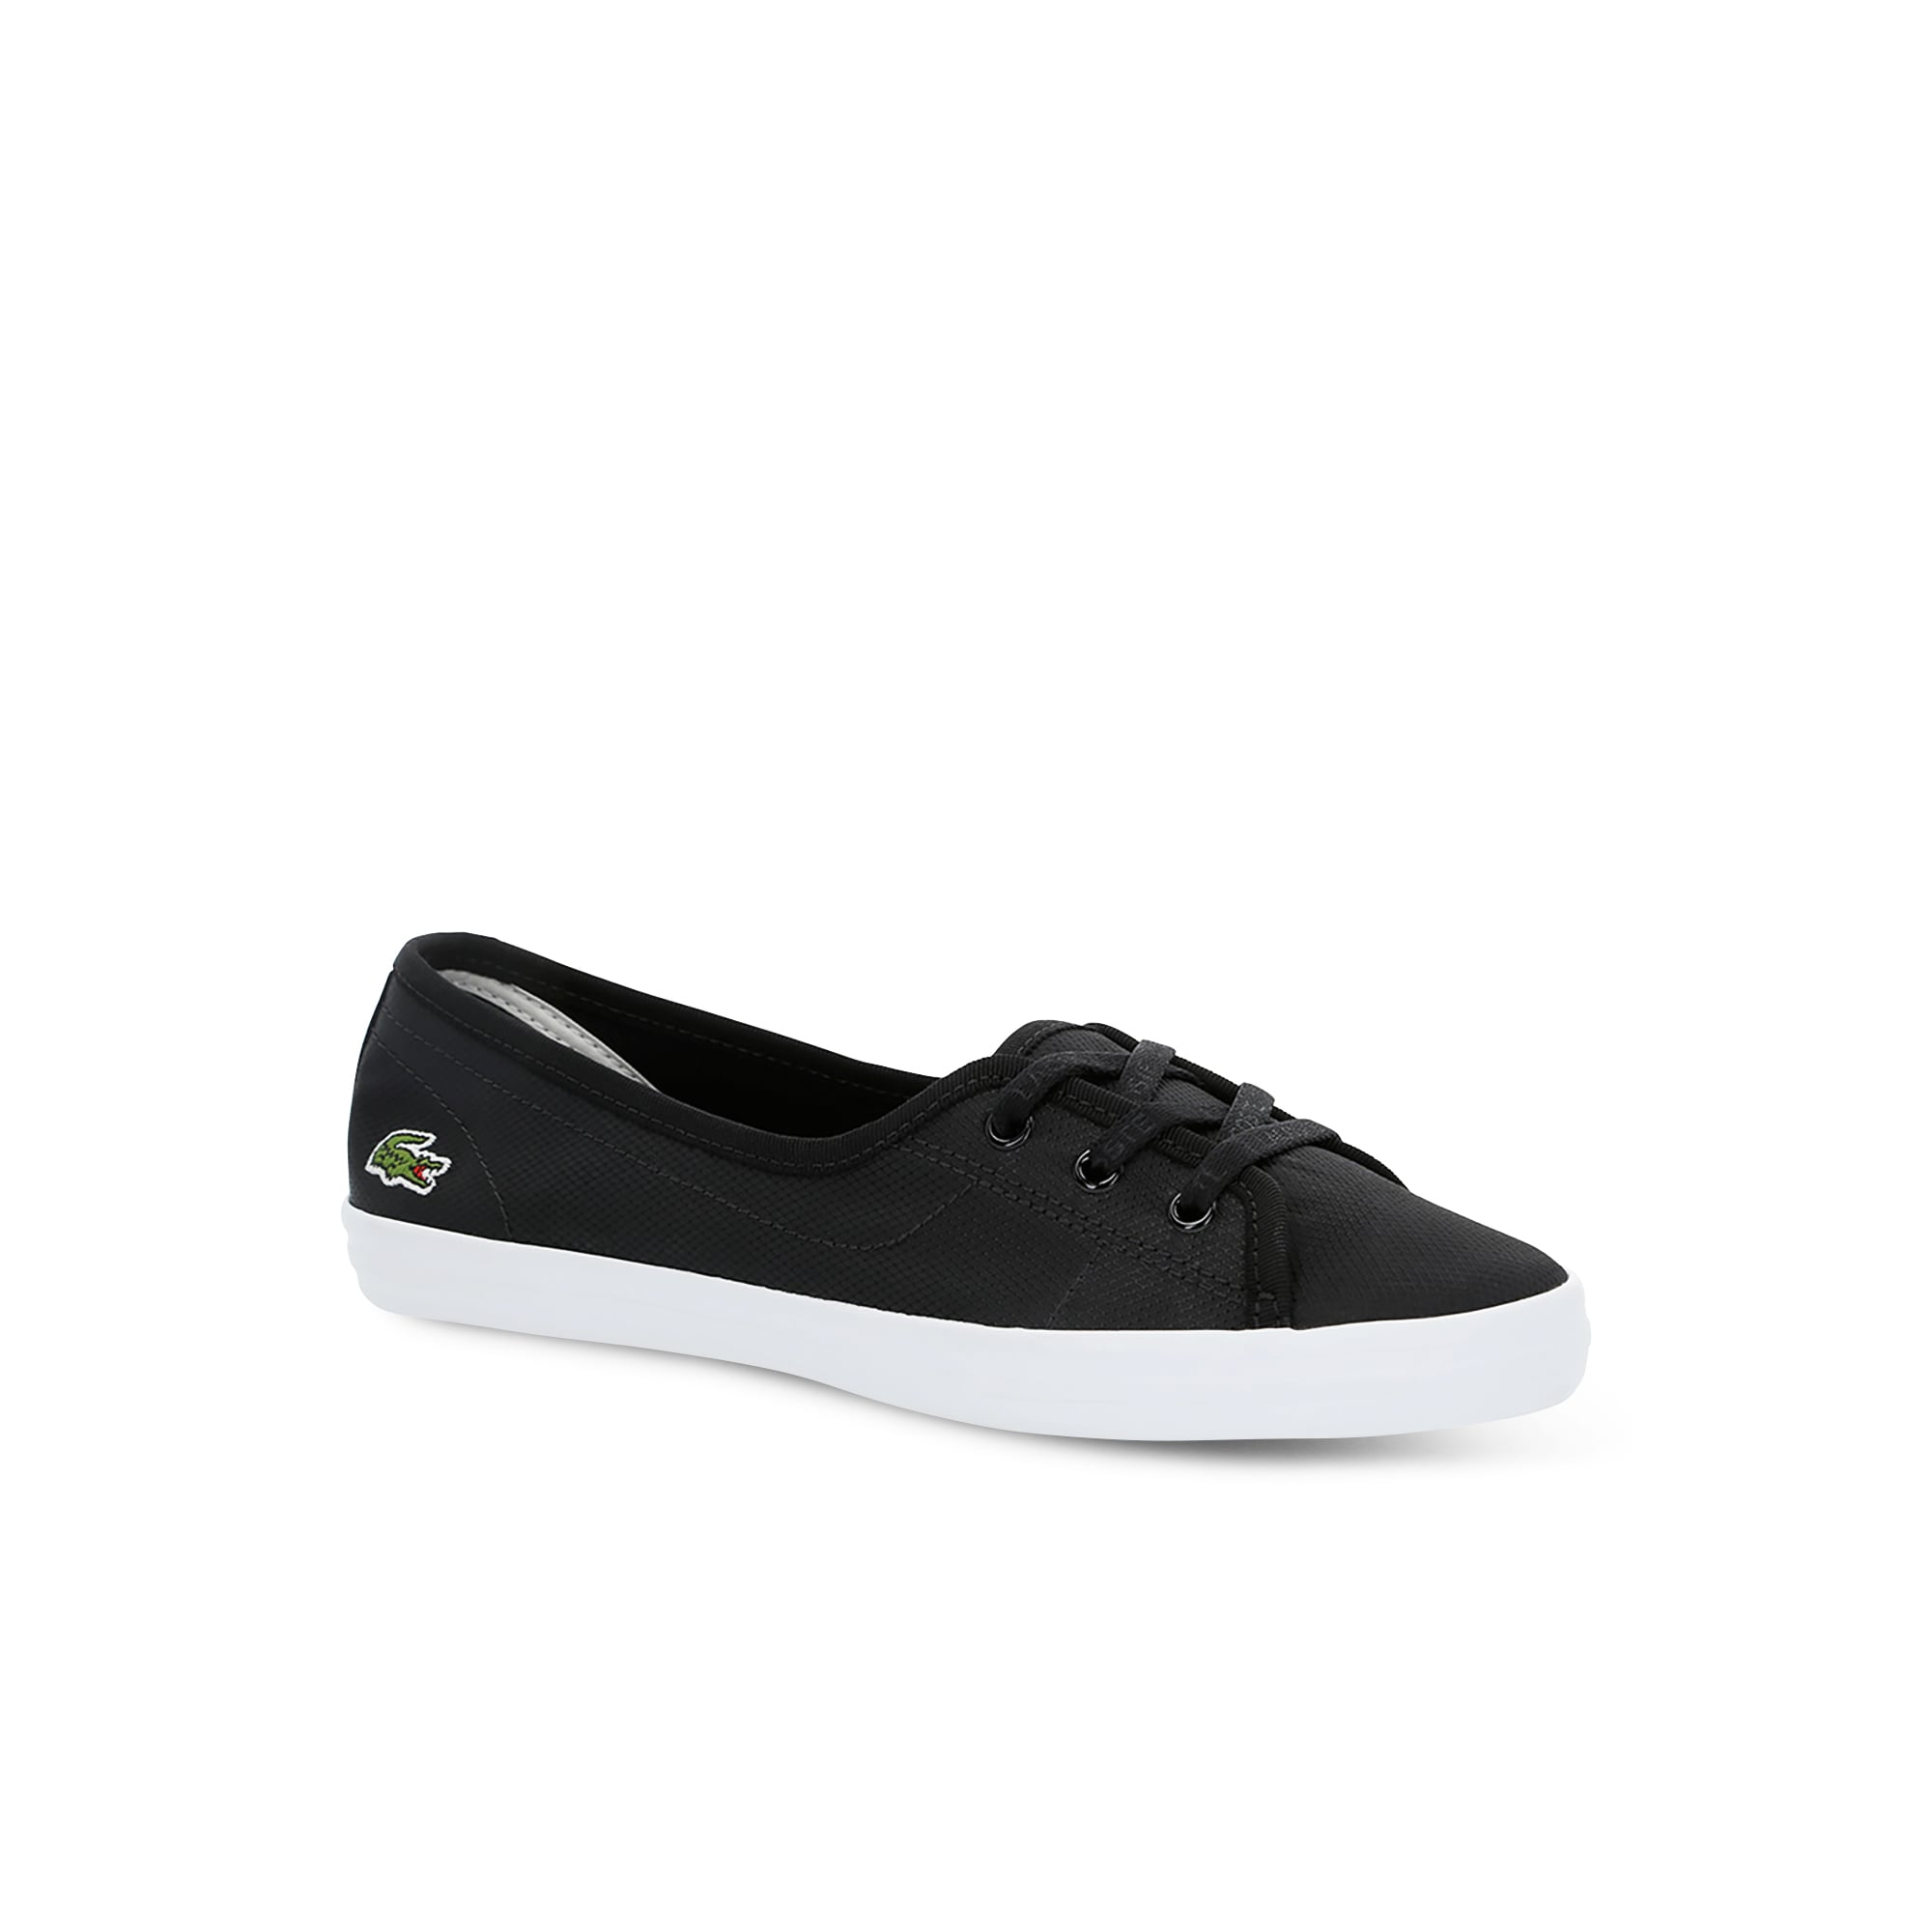 909190372f8a Women s Marice Plus Grand Canvas Slip-ons. £58.00. + 1 color